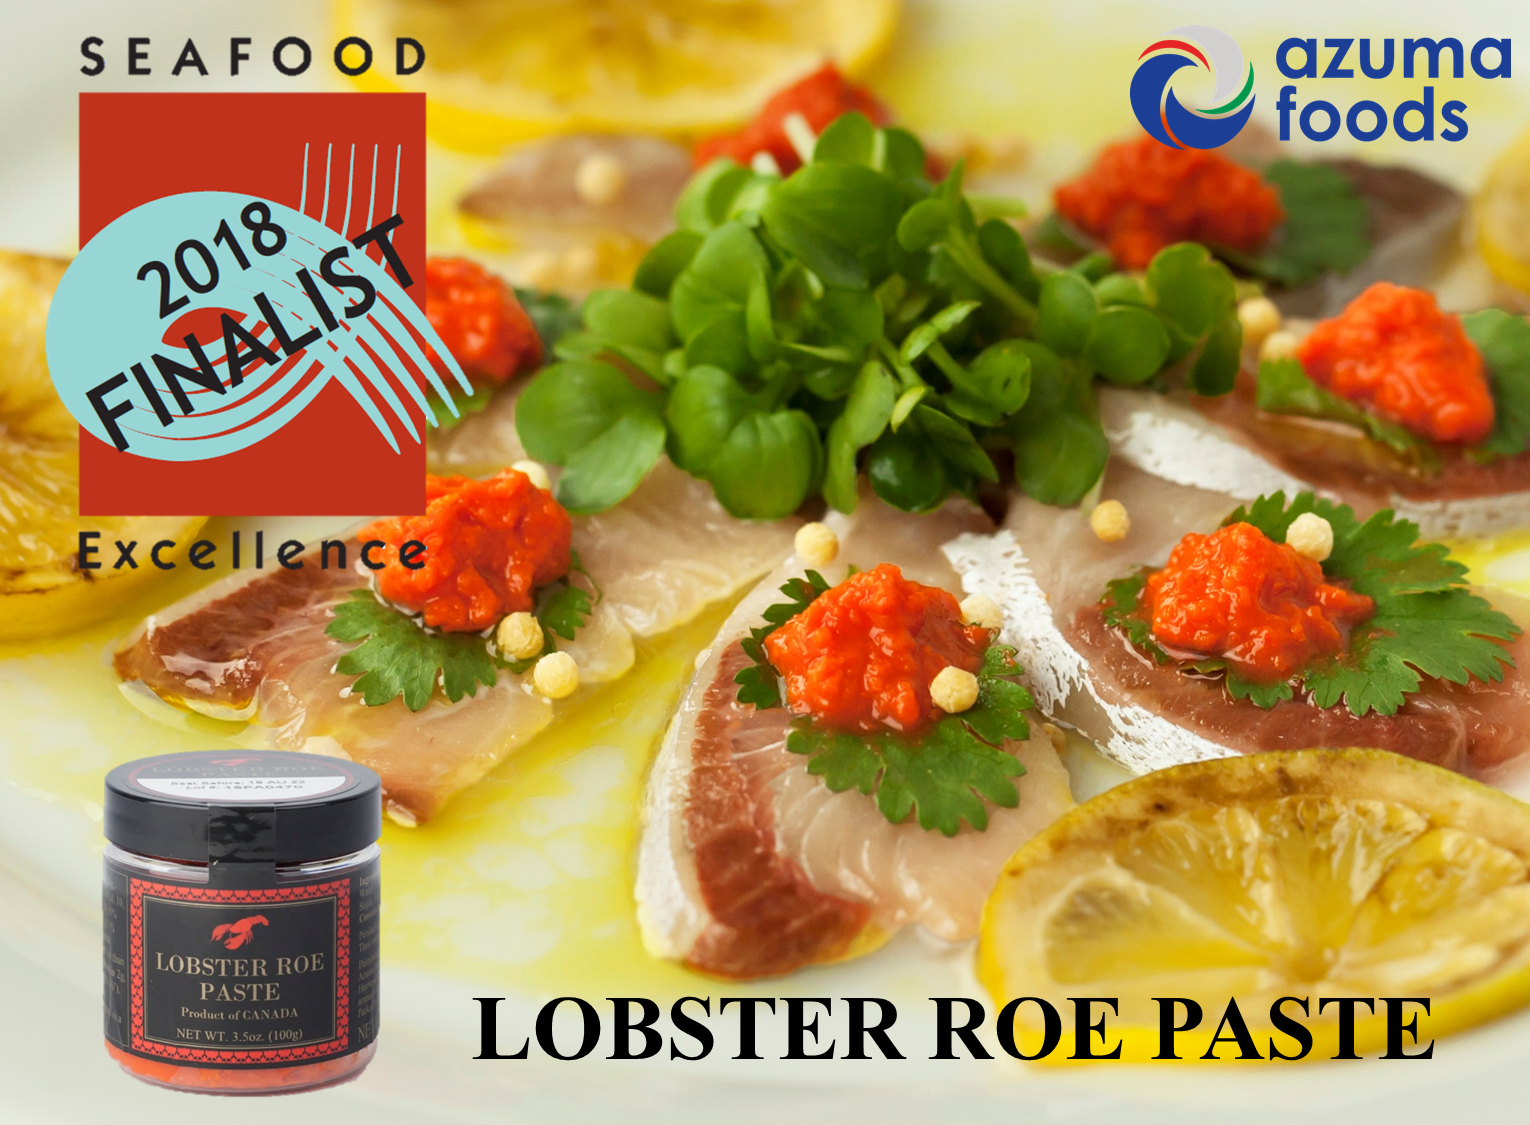 Lobster-Roe-Paste-News